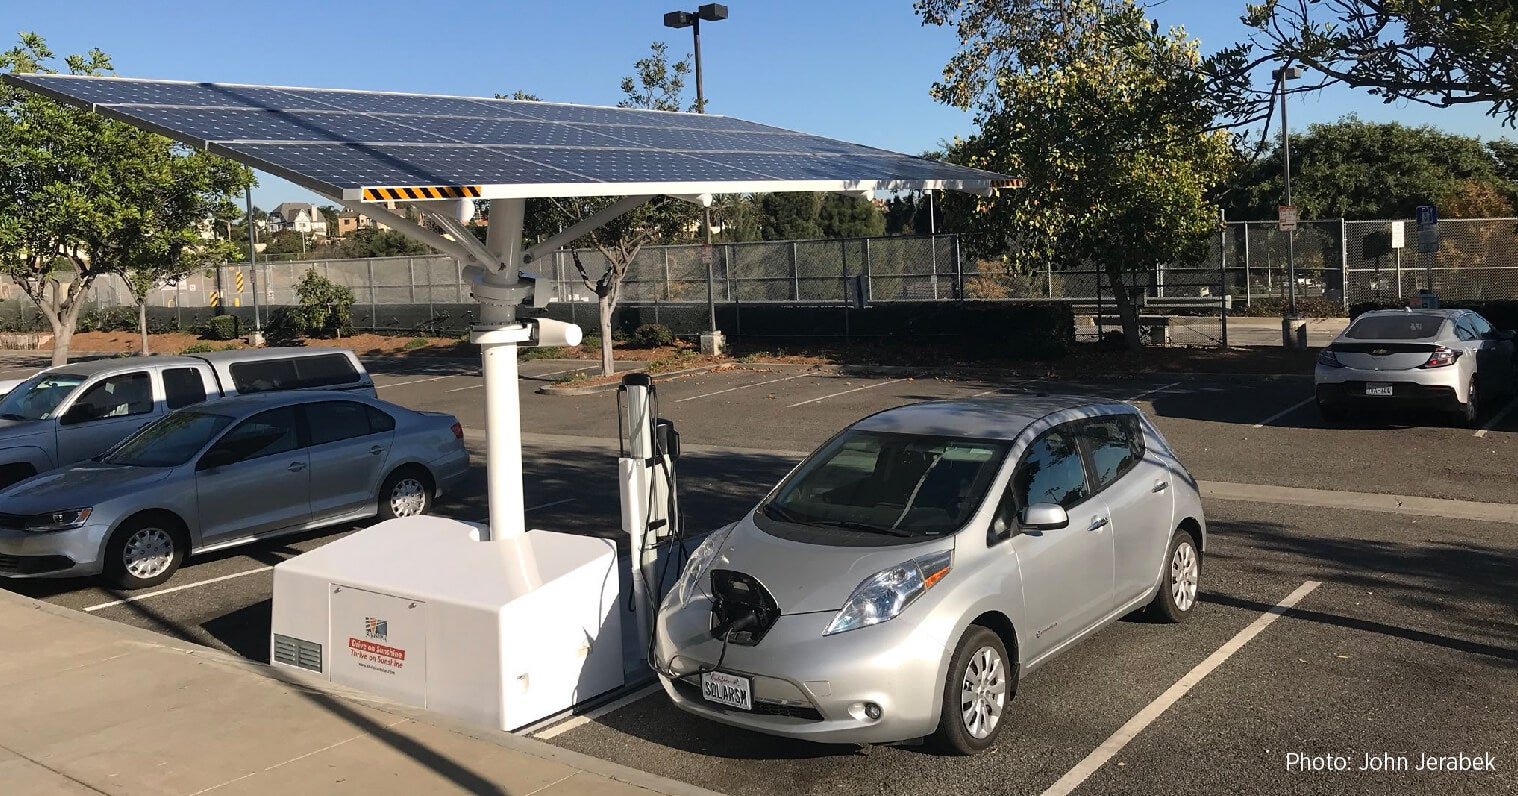 Charging EVs on solar energy has a big impact